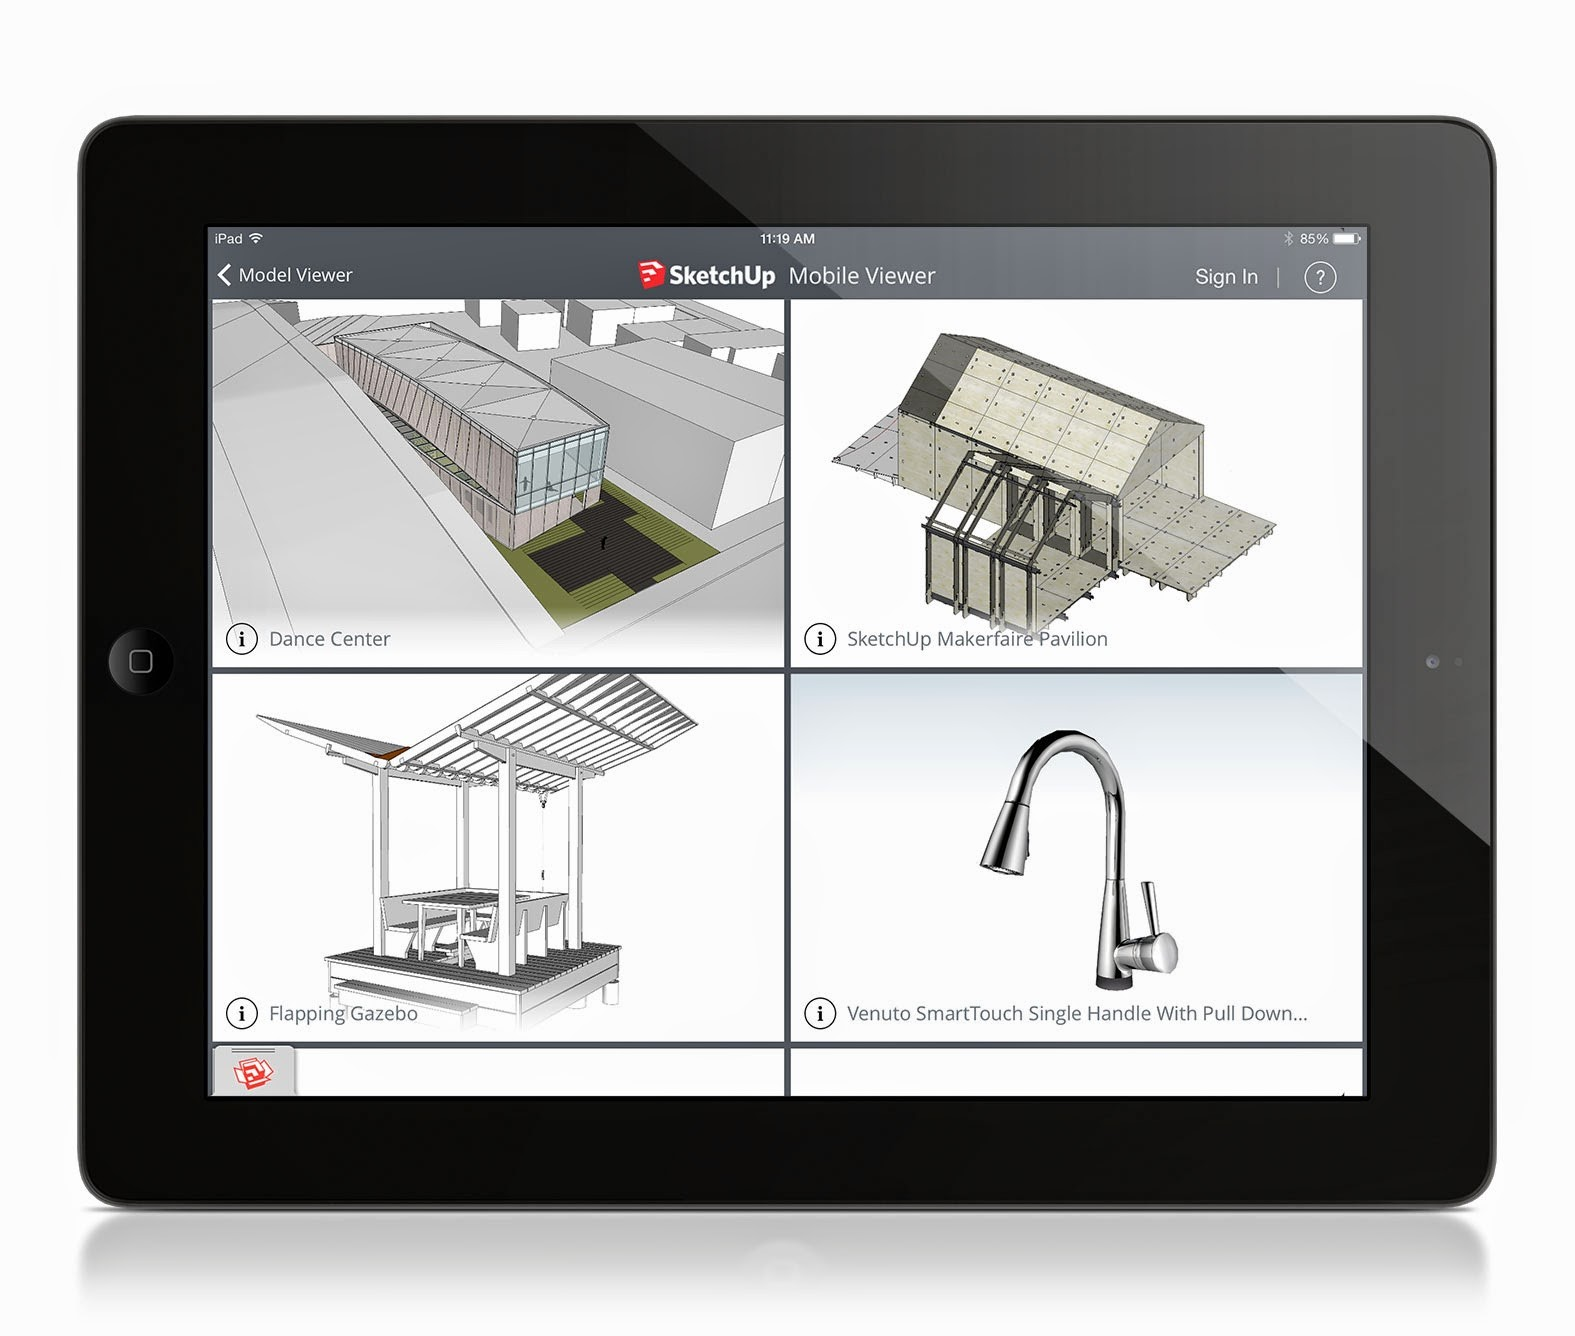 SketchUp Announces Mobile Viewer For IPad